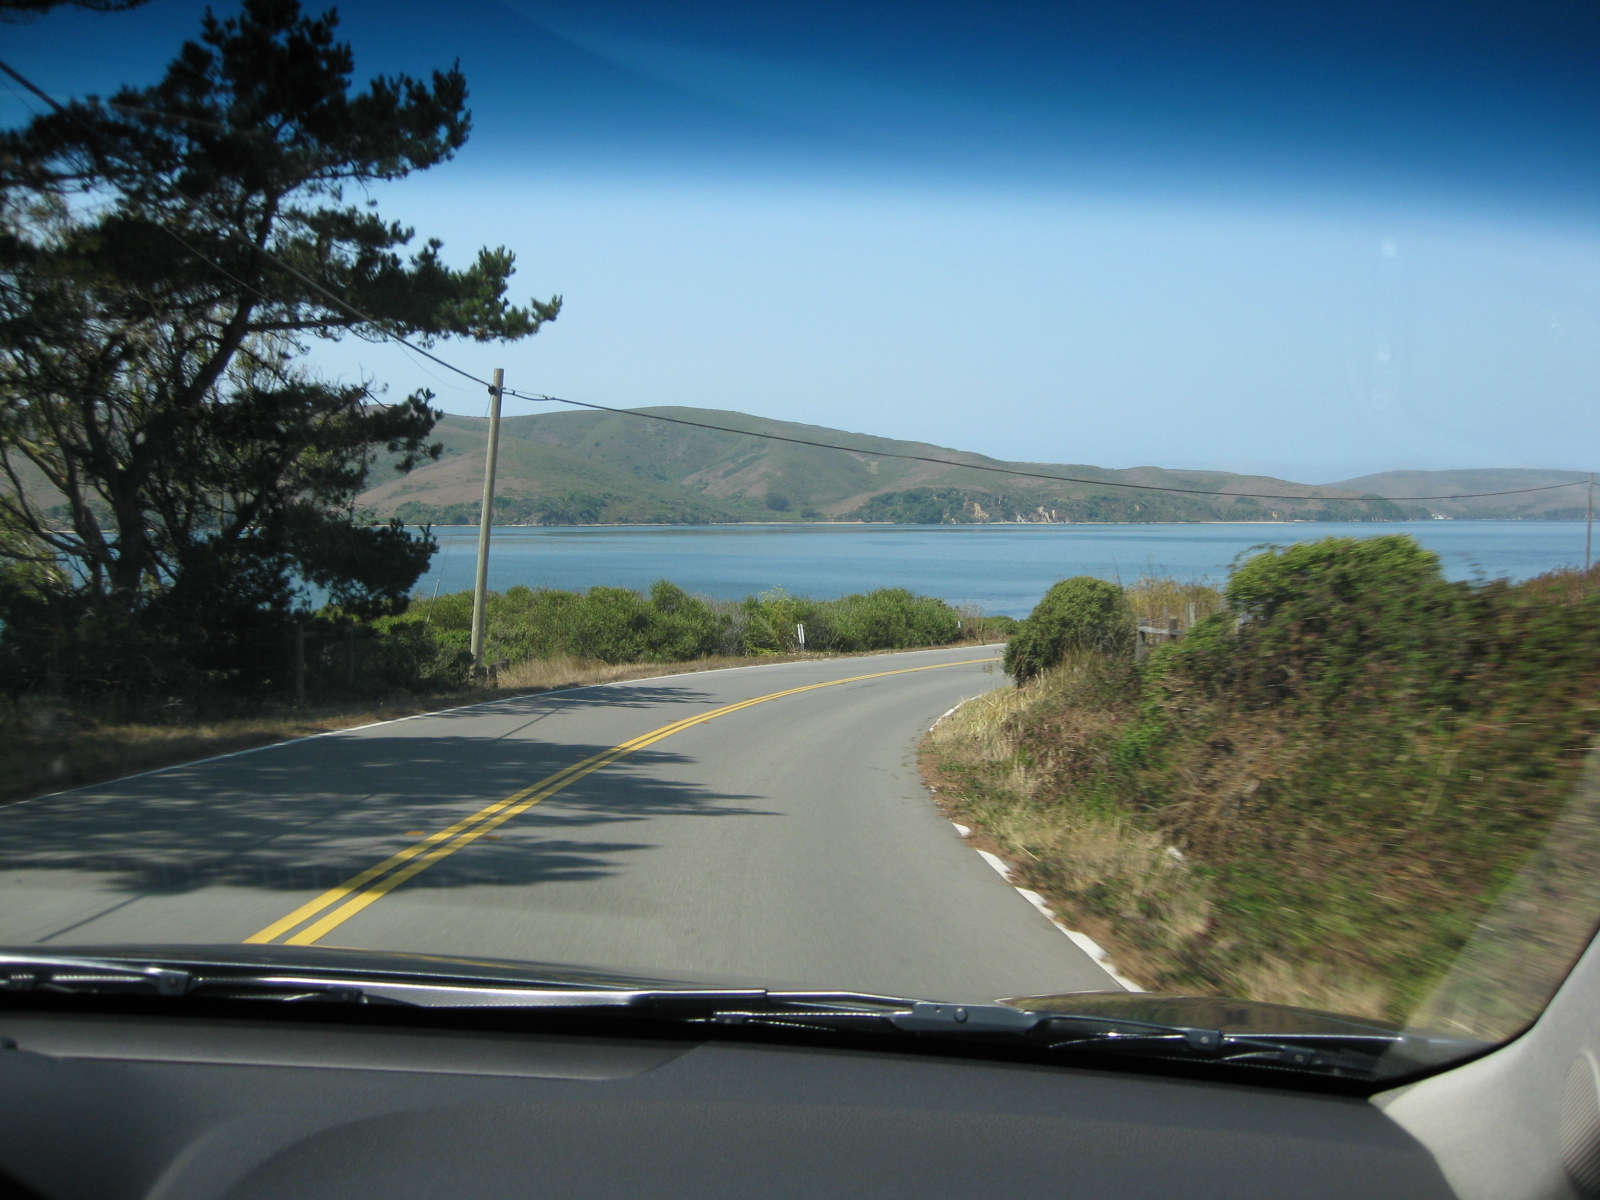 View from the 2009 Acura TL